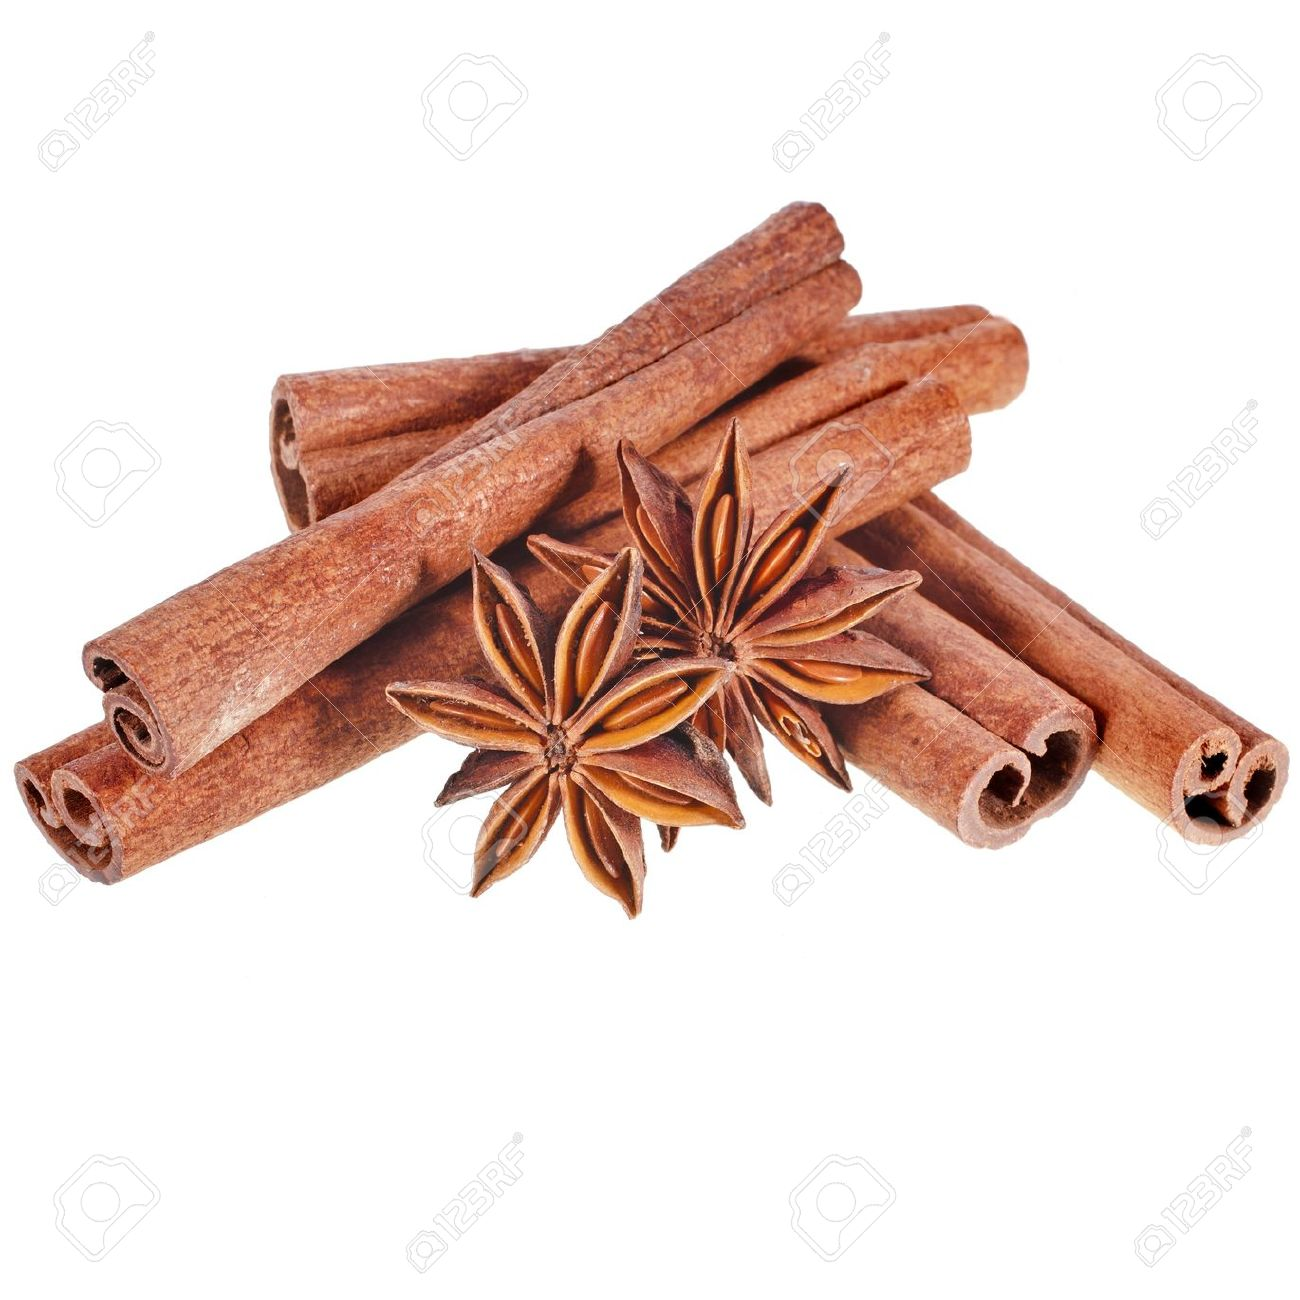 Cinnamon Sticks With Whole Star Anise Isolated On White Background.